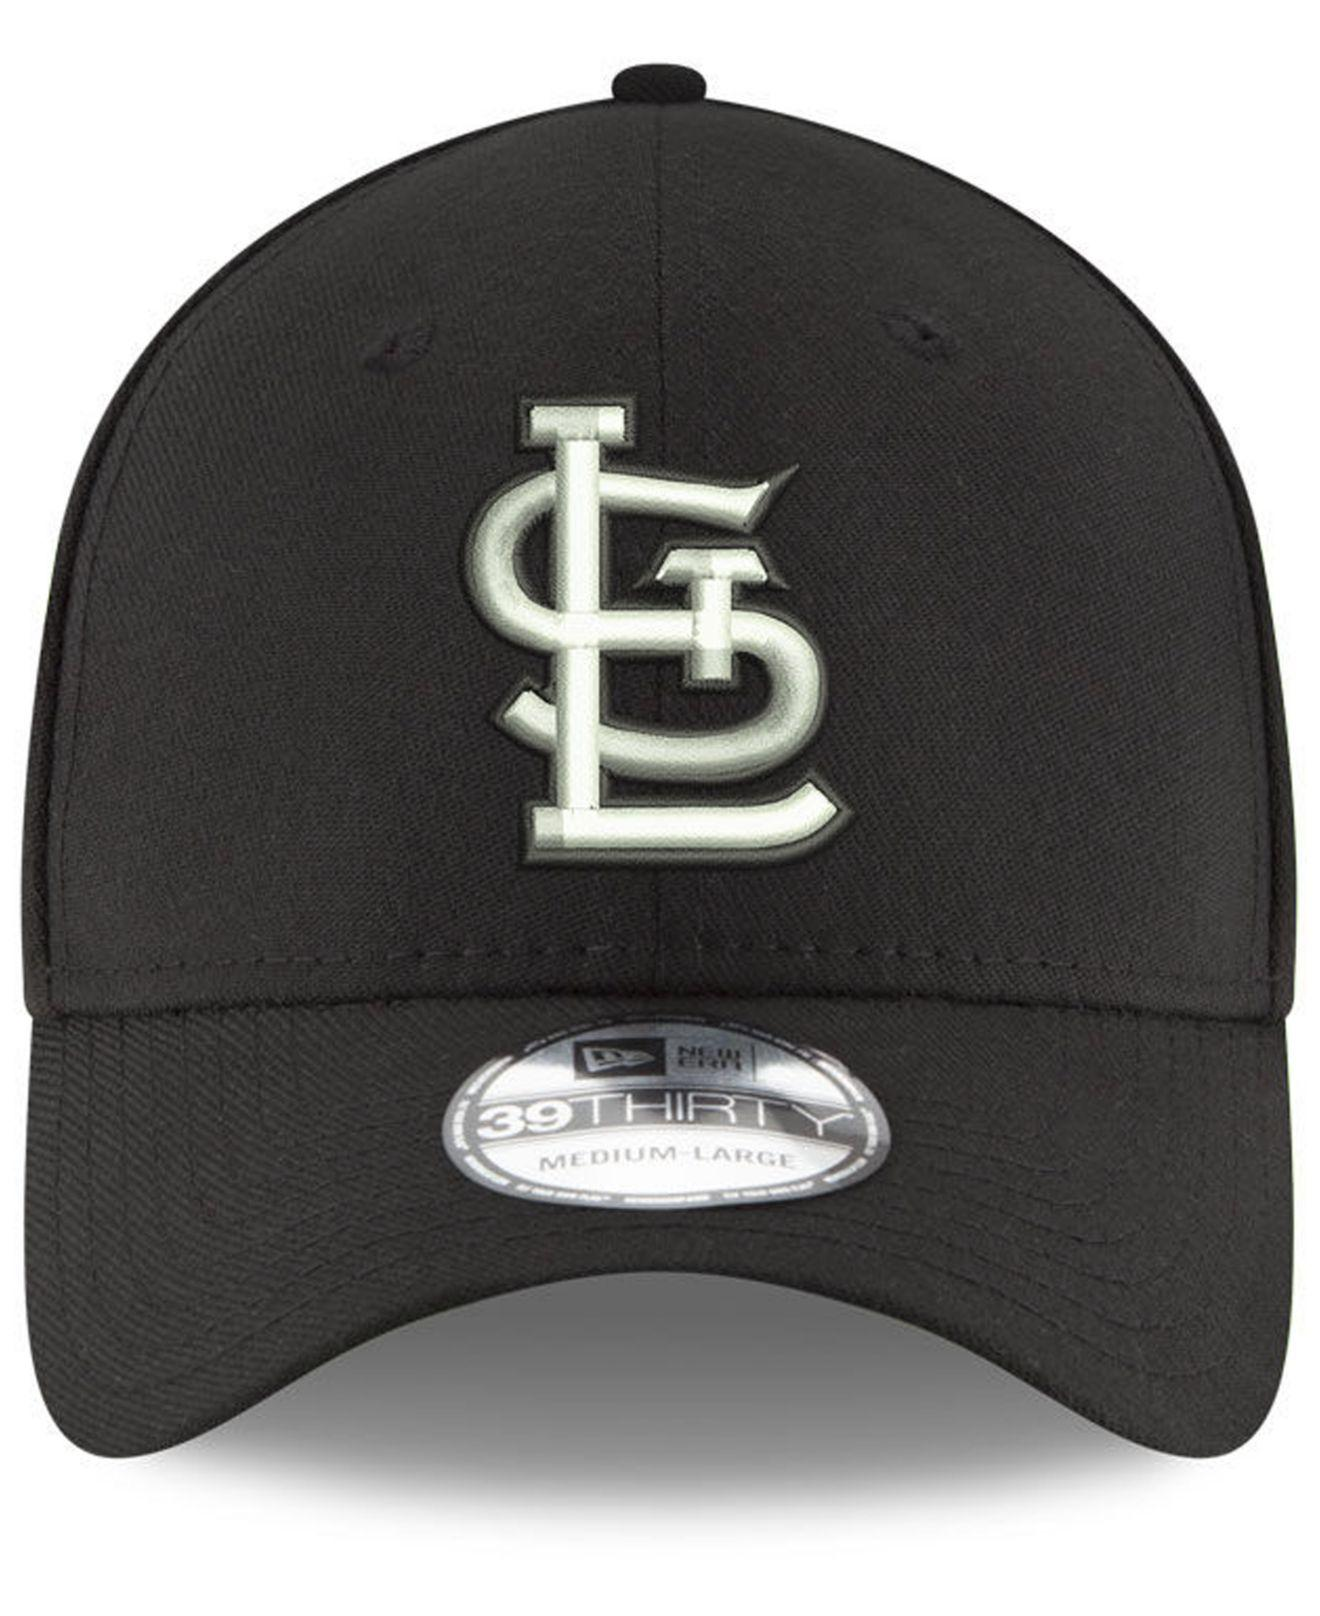 huge selection of ccdfe 7ea42 purchase lyst ktz st. louis cardinals dub classic 39thirty cap in black for  men 6ccda